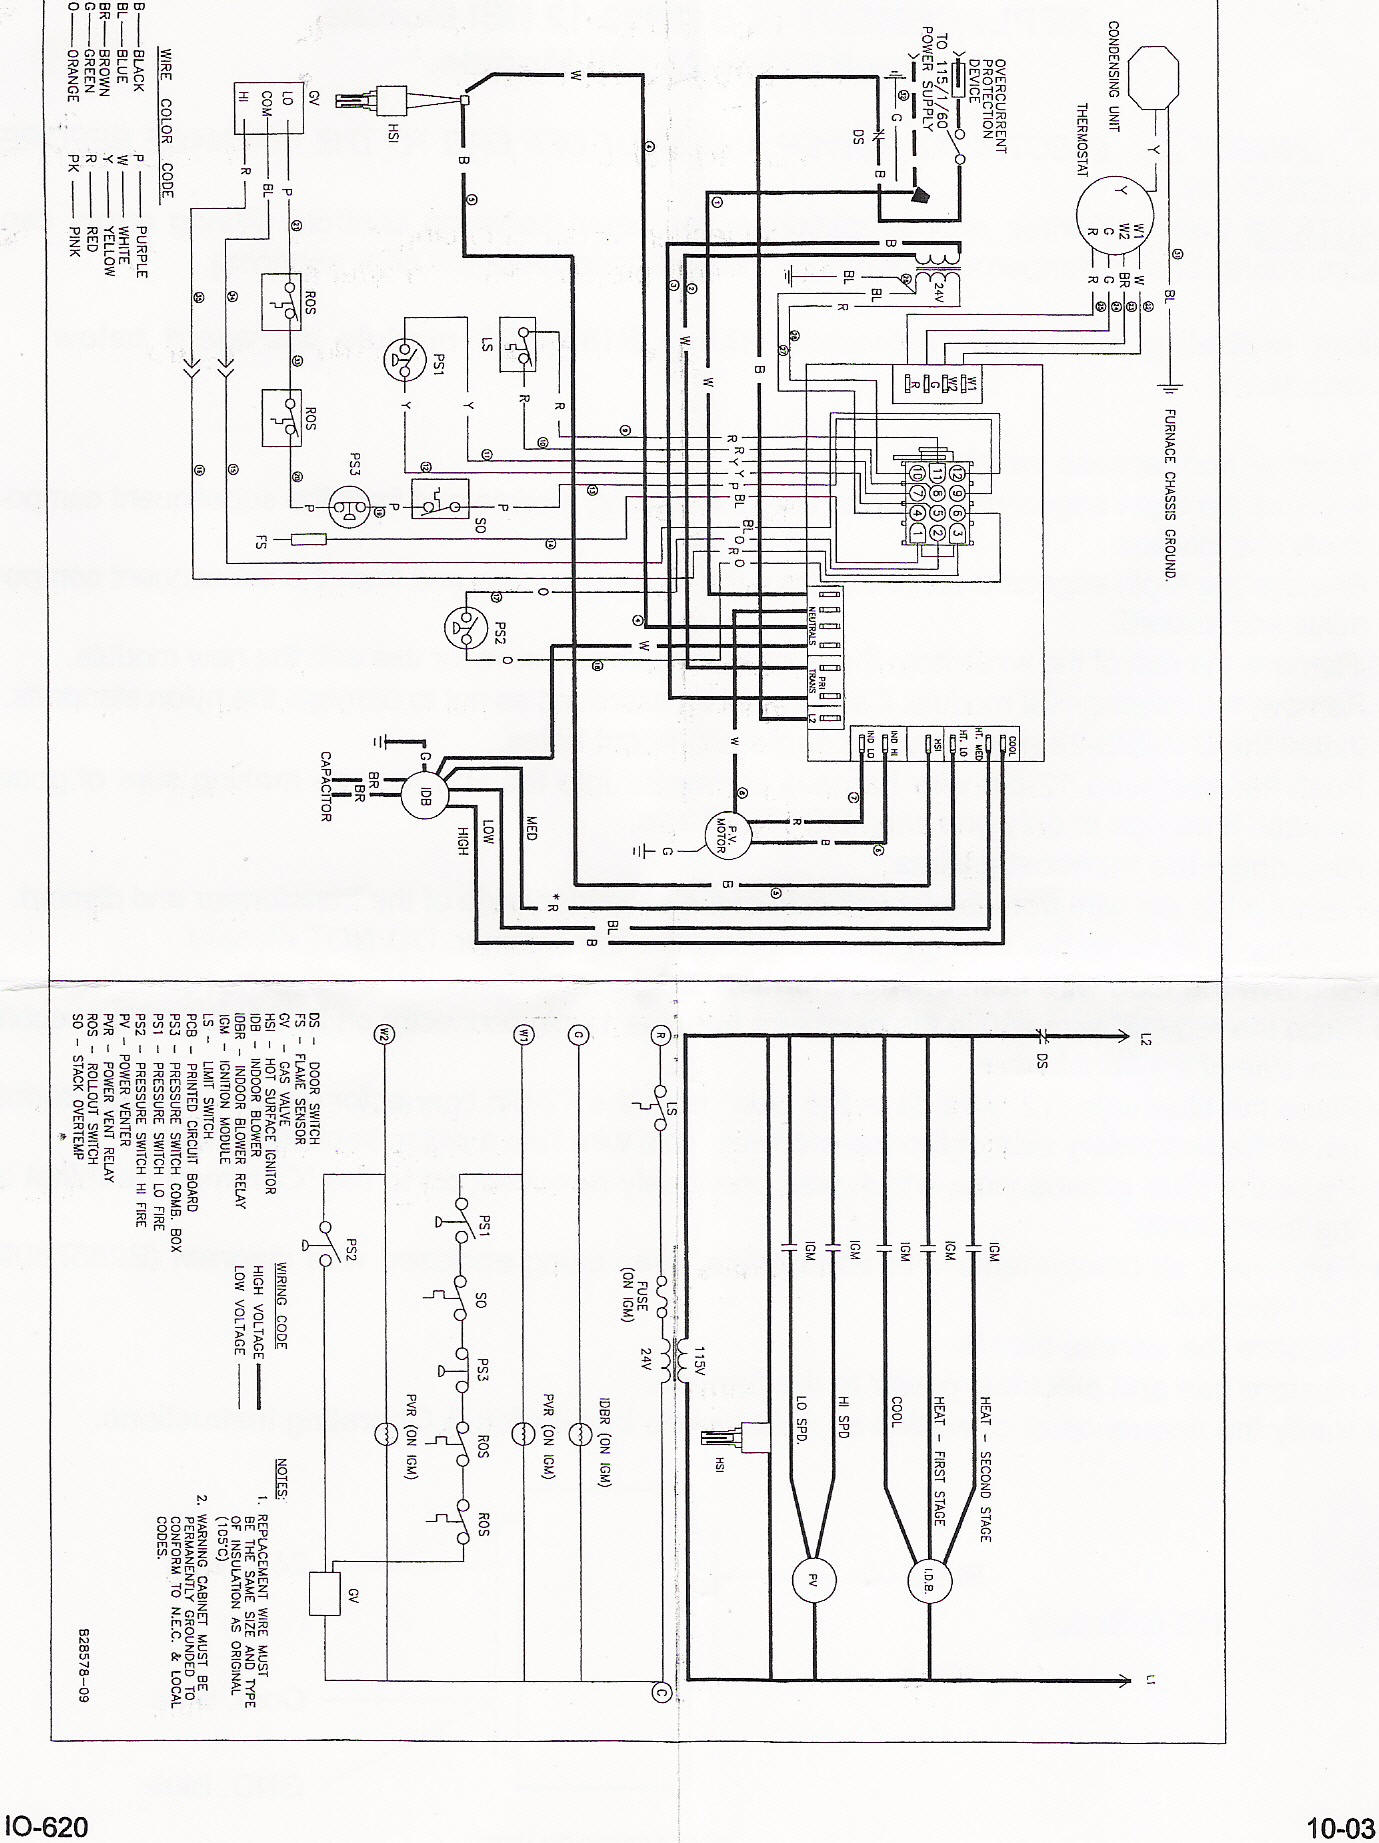 goodma2 instr goodman control board b18099 23 instructions goodman furnace wiring diagram at readyjetset.co